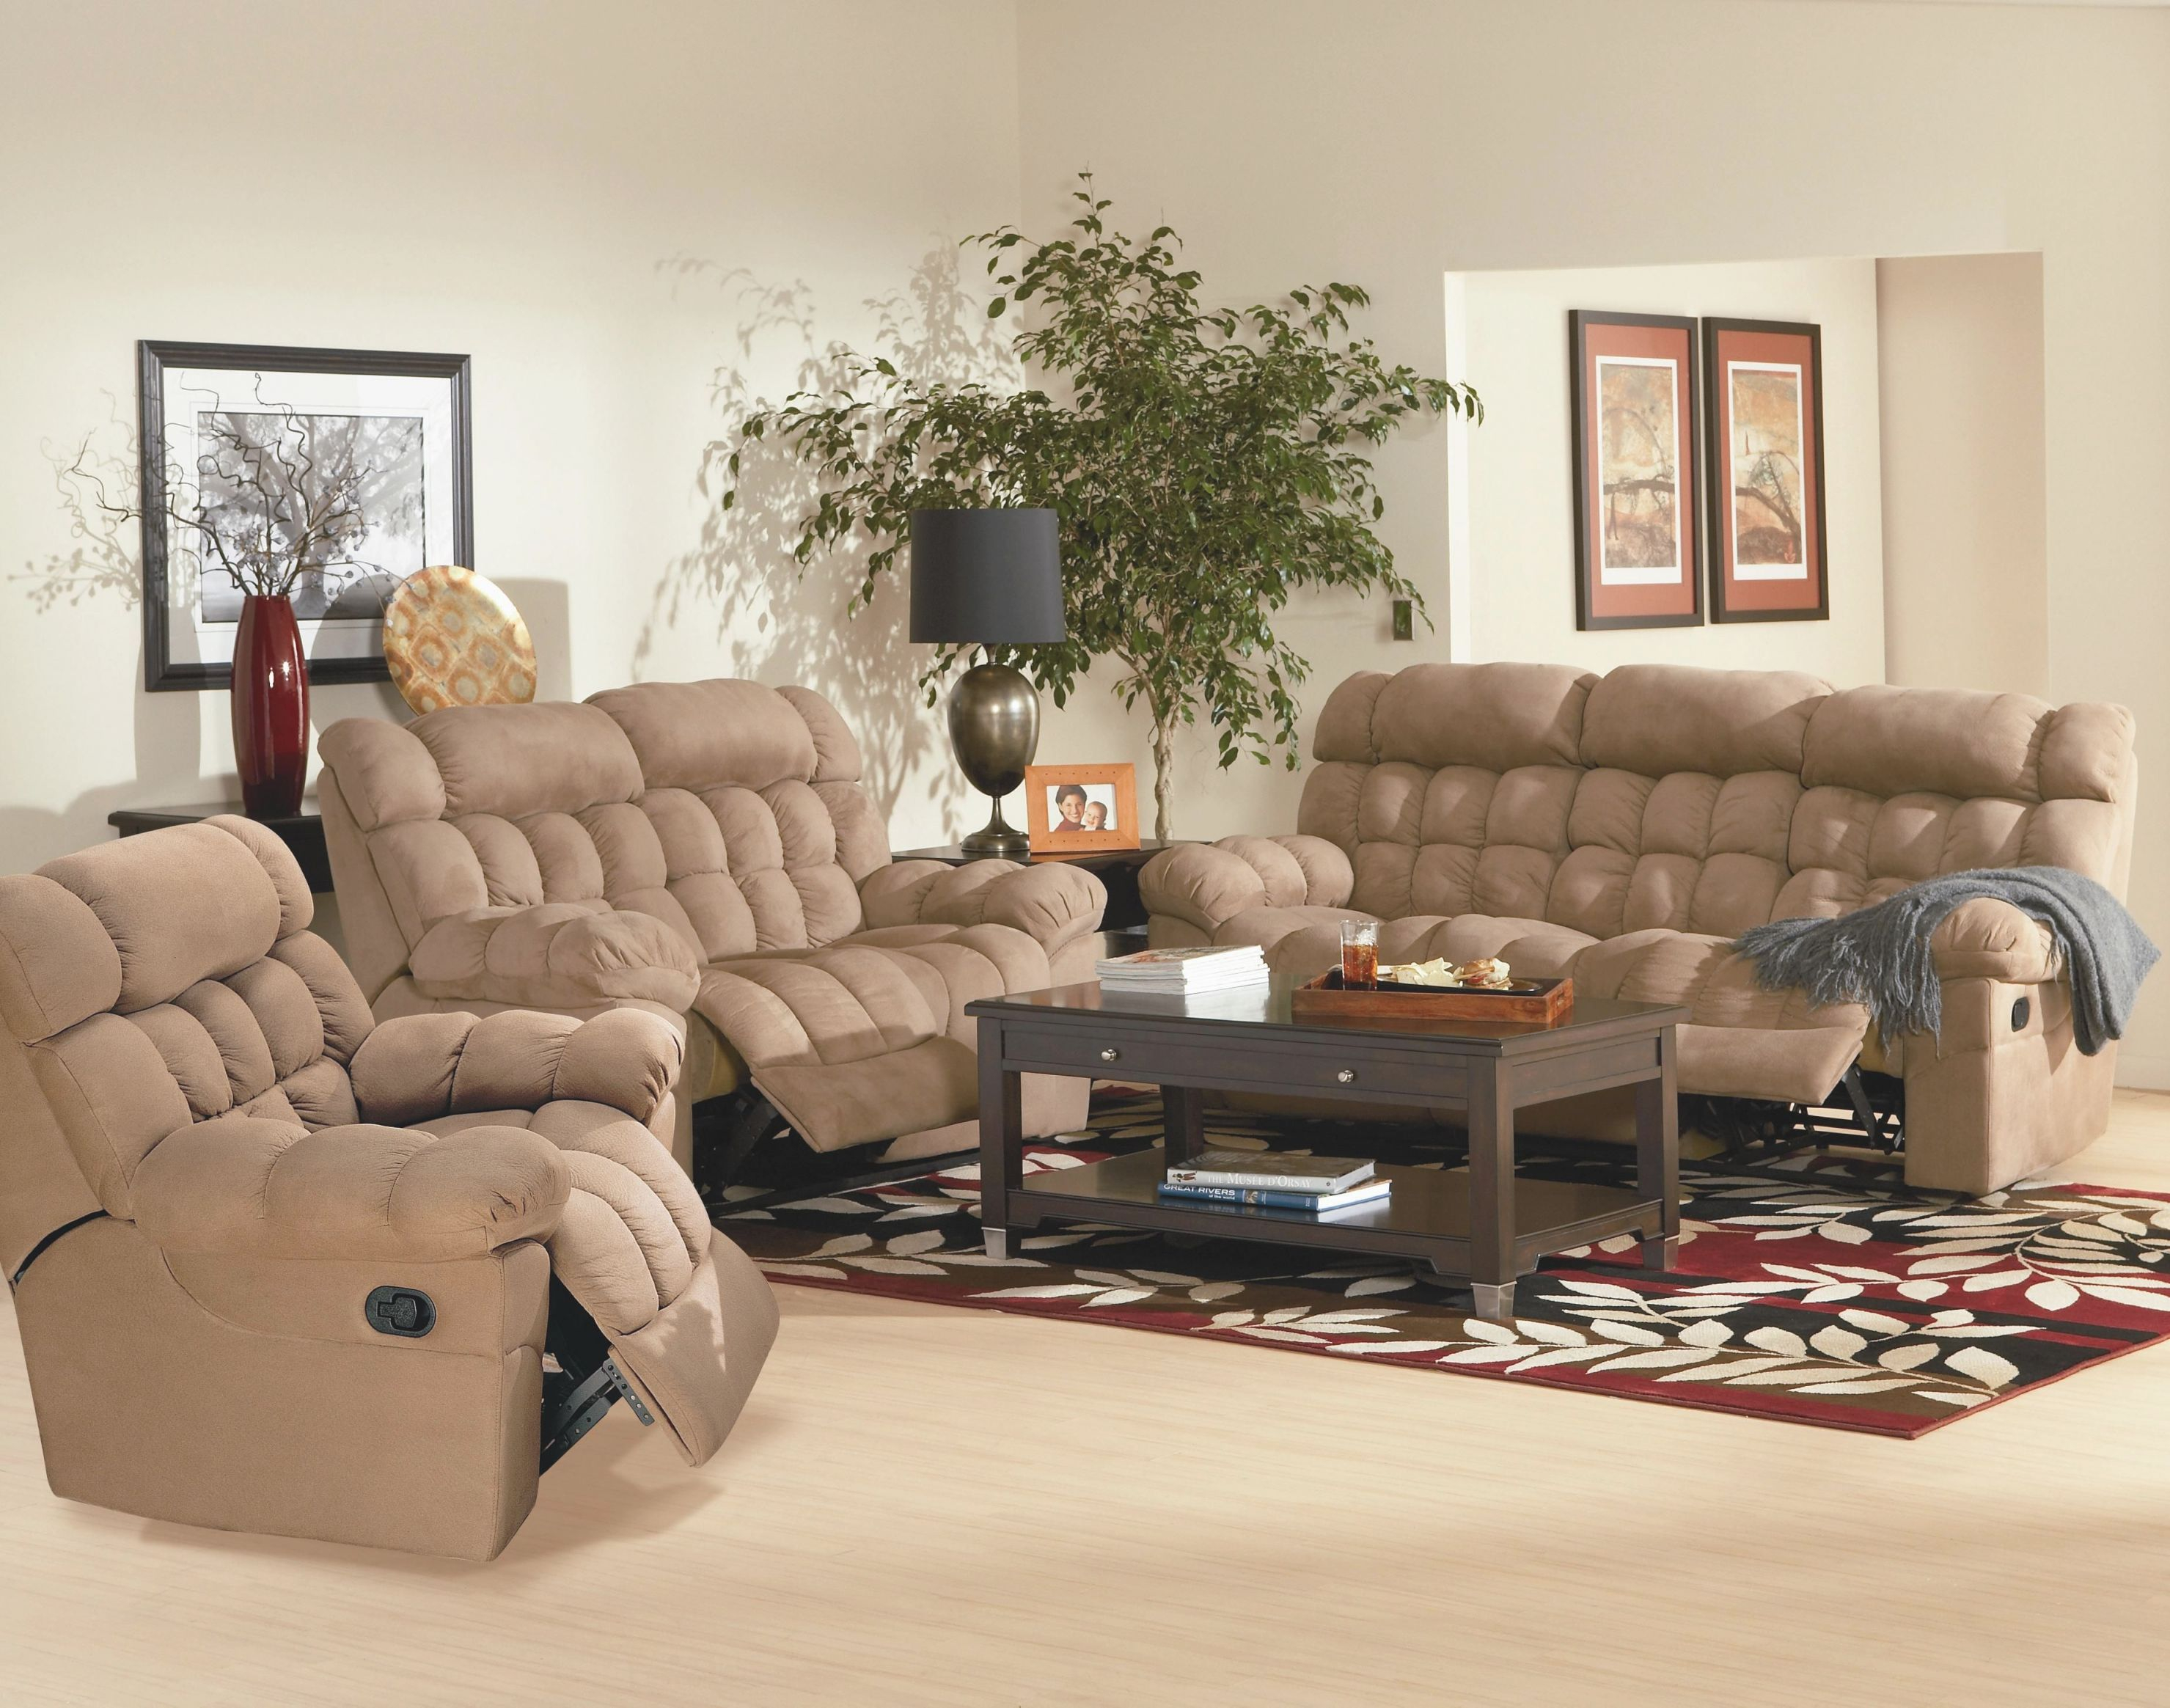 Overstuffed Sofa | Office Sofa | Microfiber Sofa, Living throughout Elegant Overstuffed Living Room Furniture